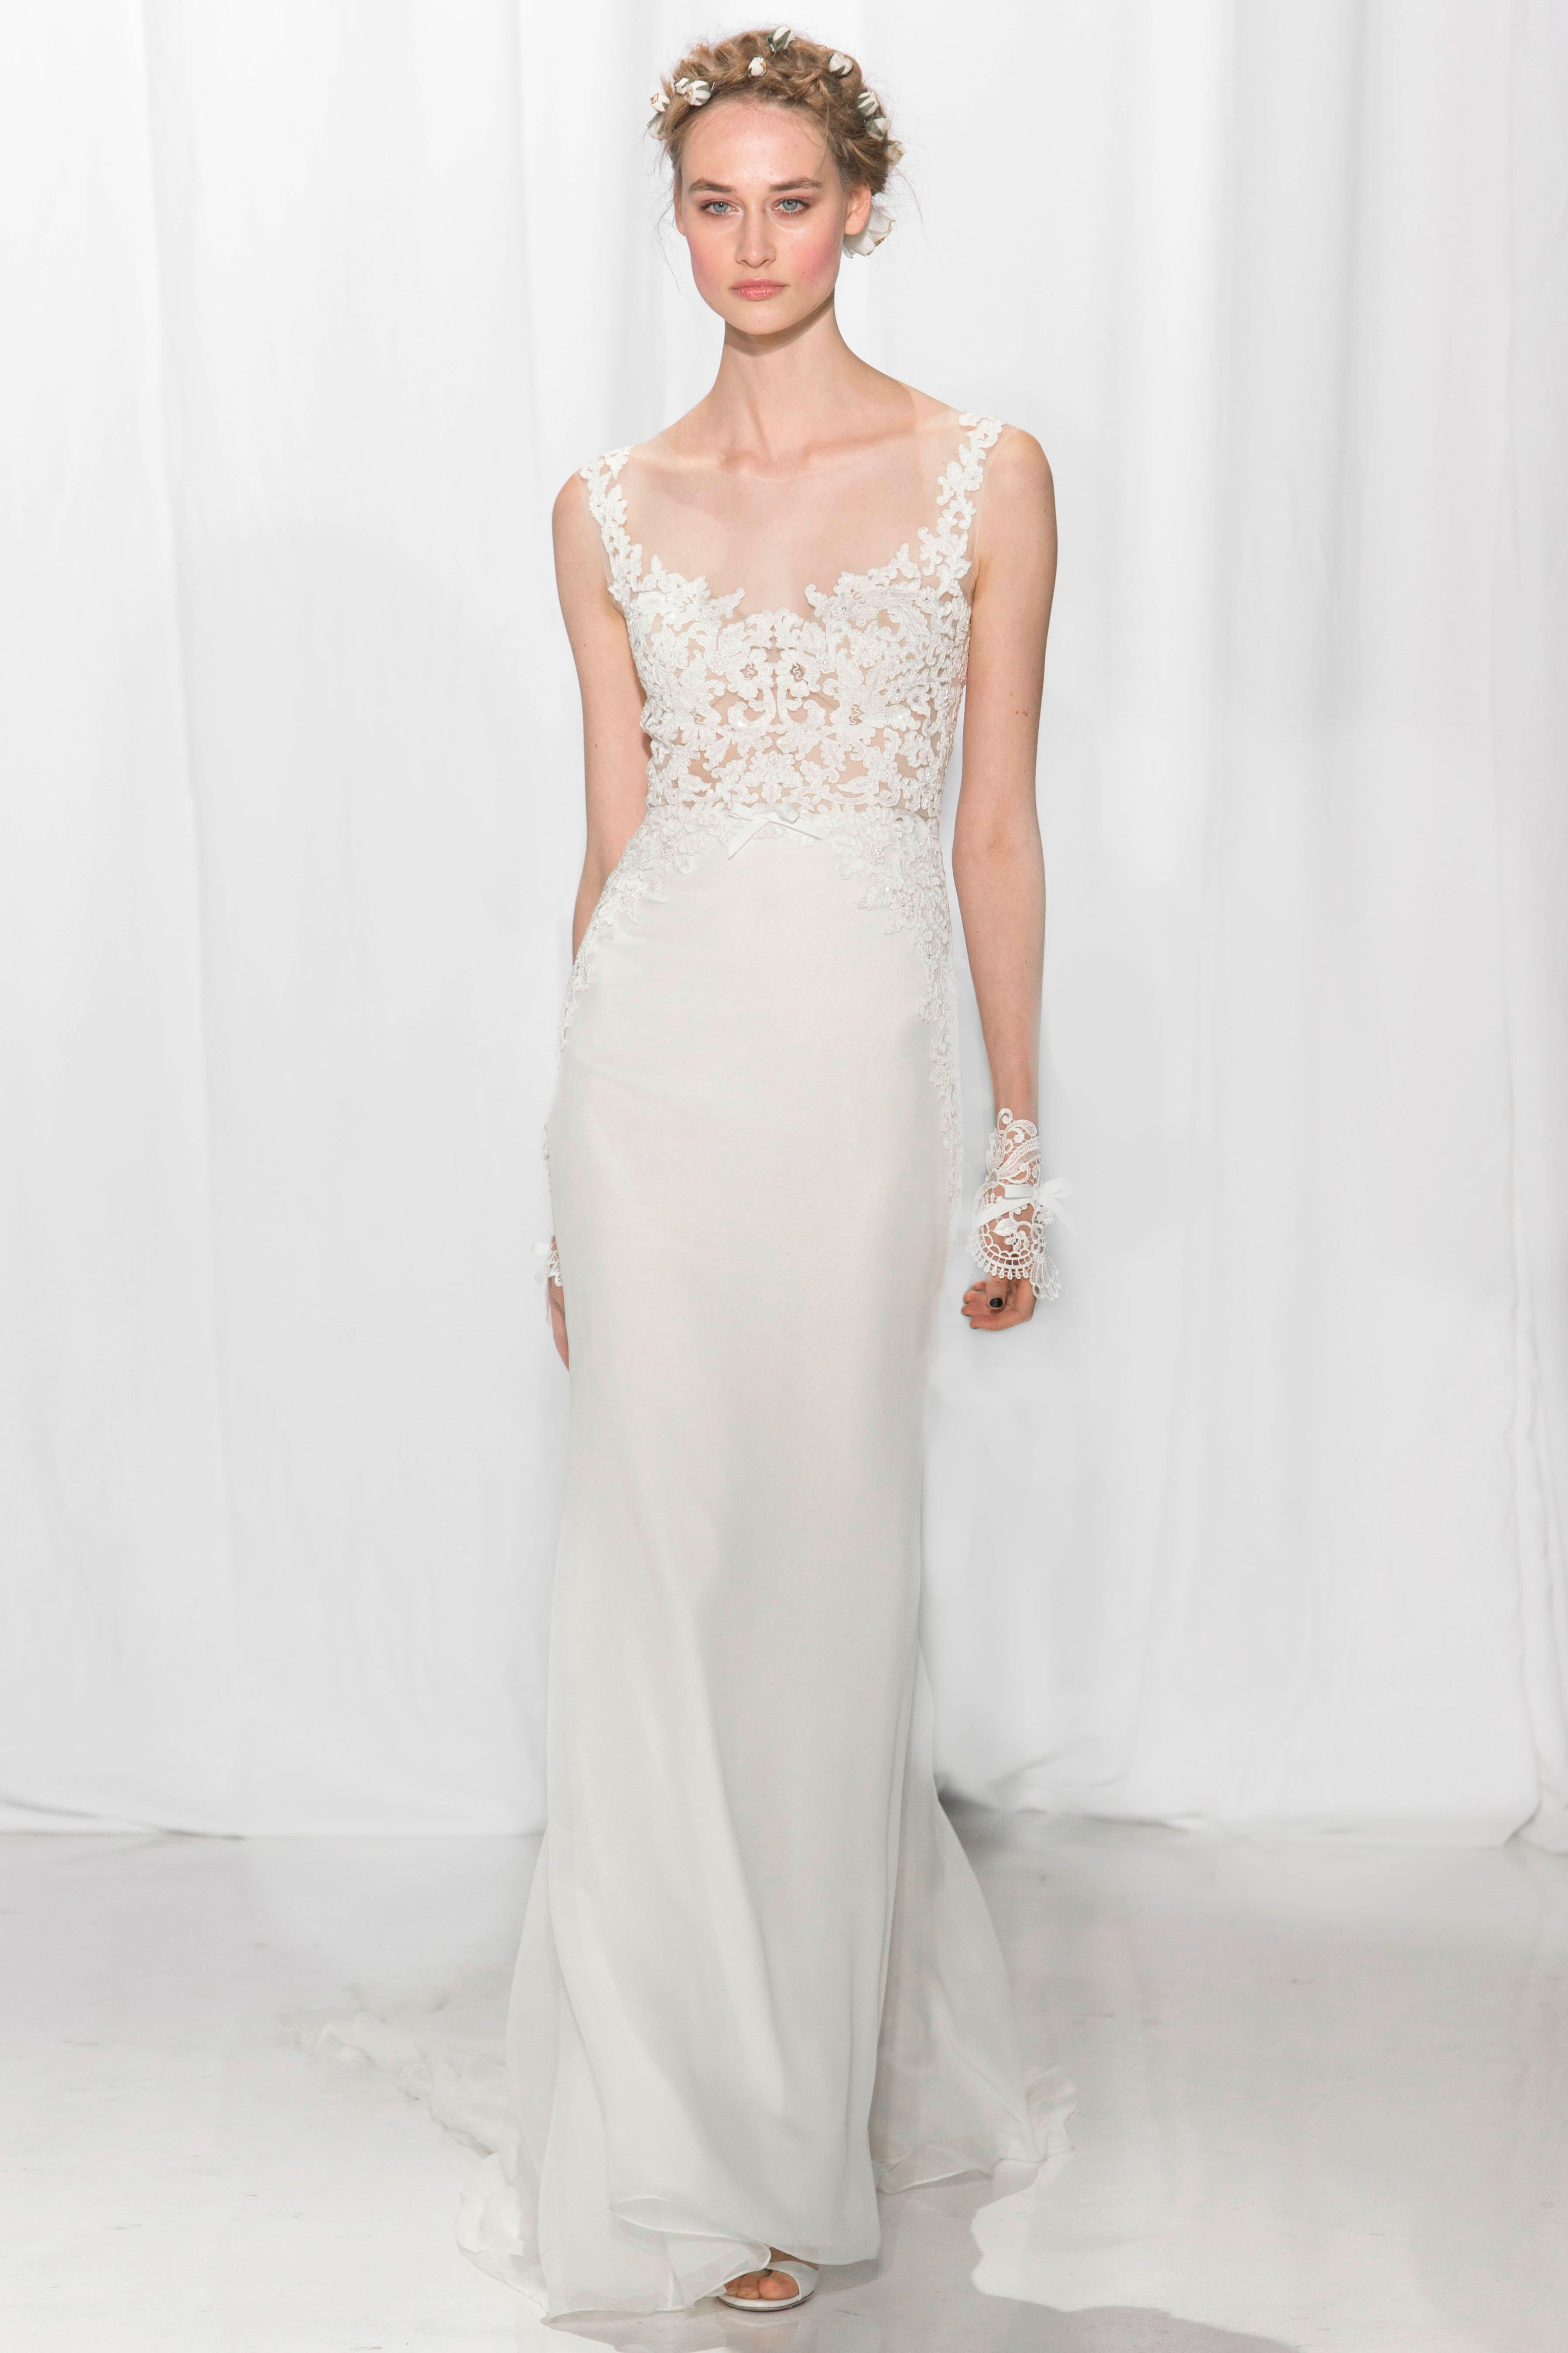 The most stunning fall wedding dresses from bridal fashion week